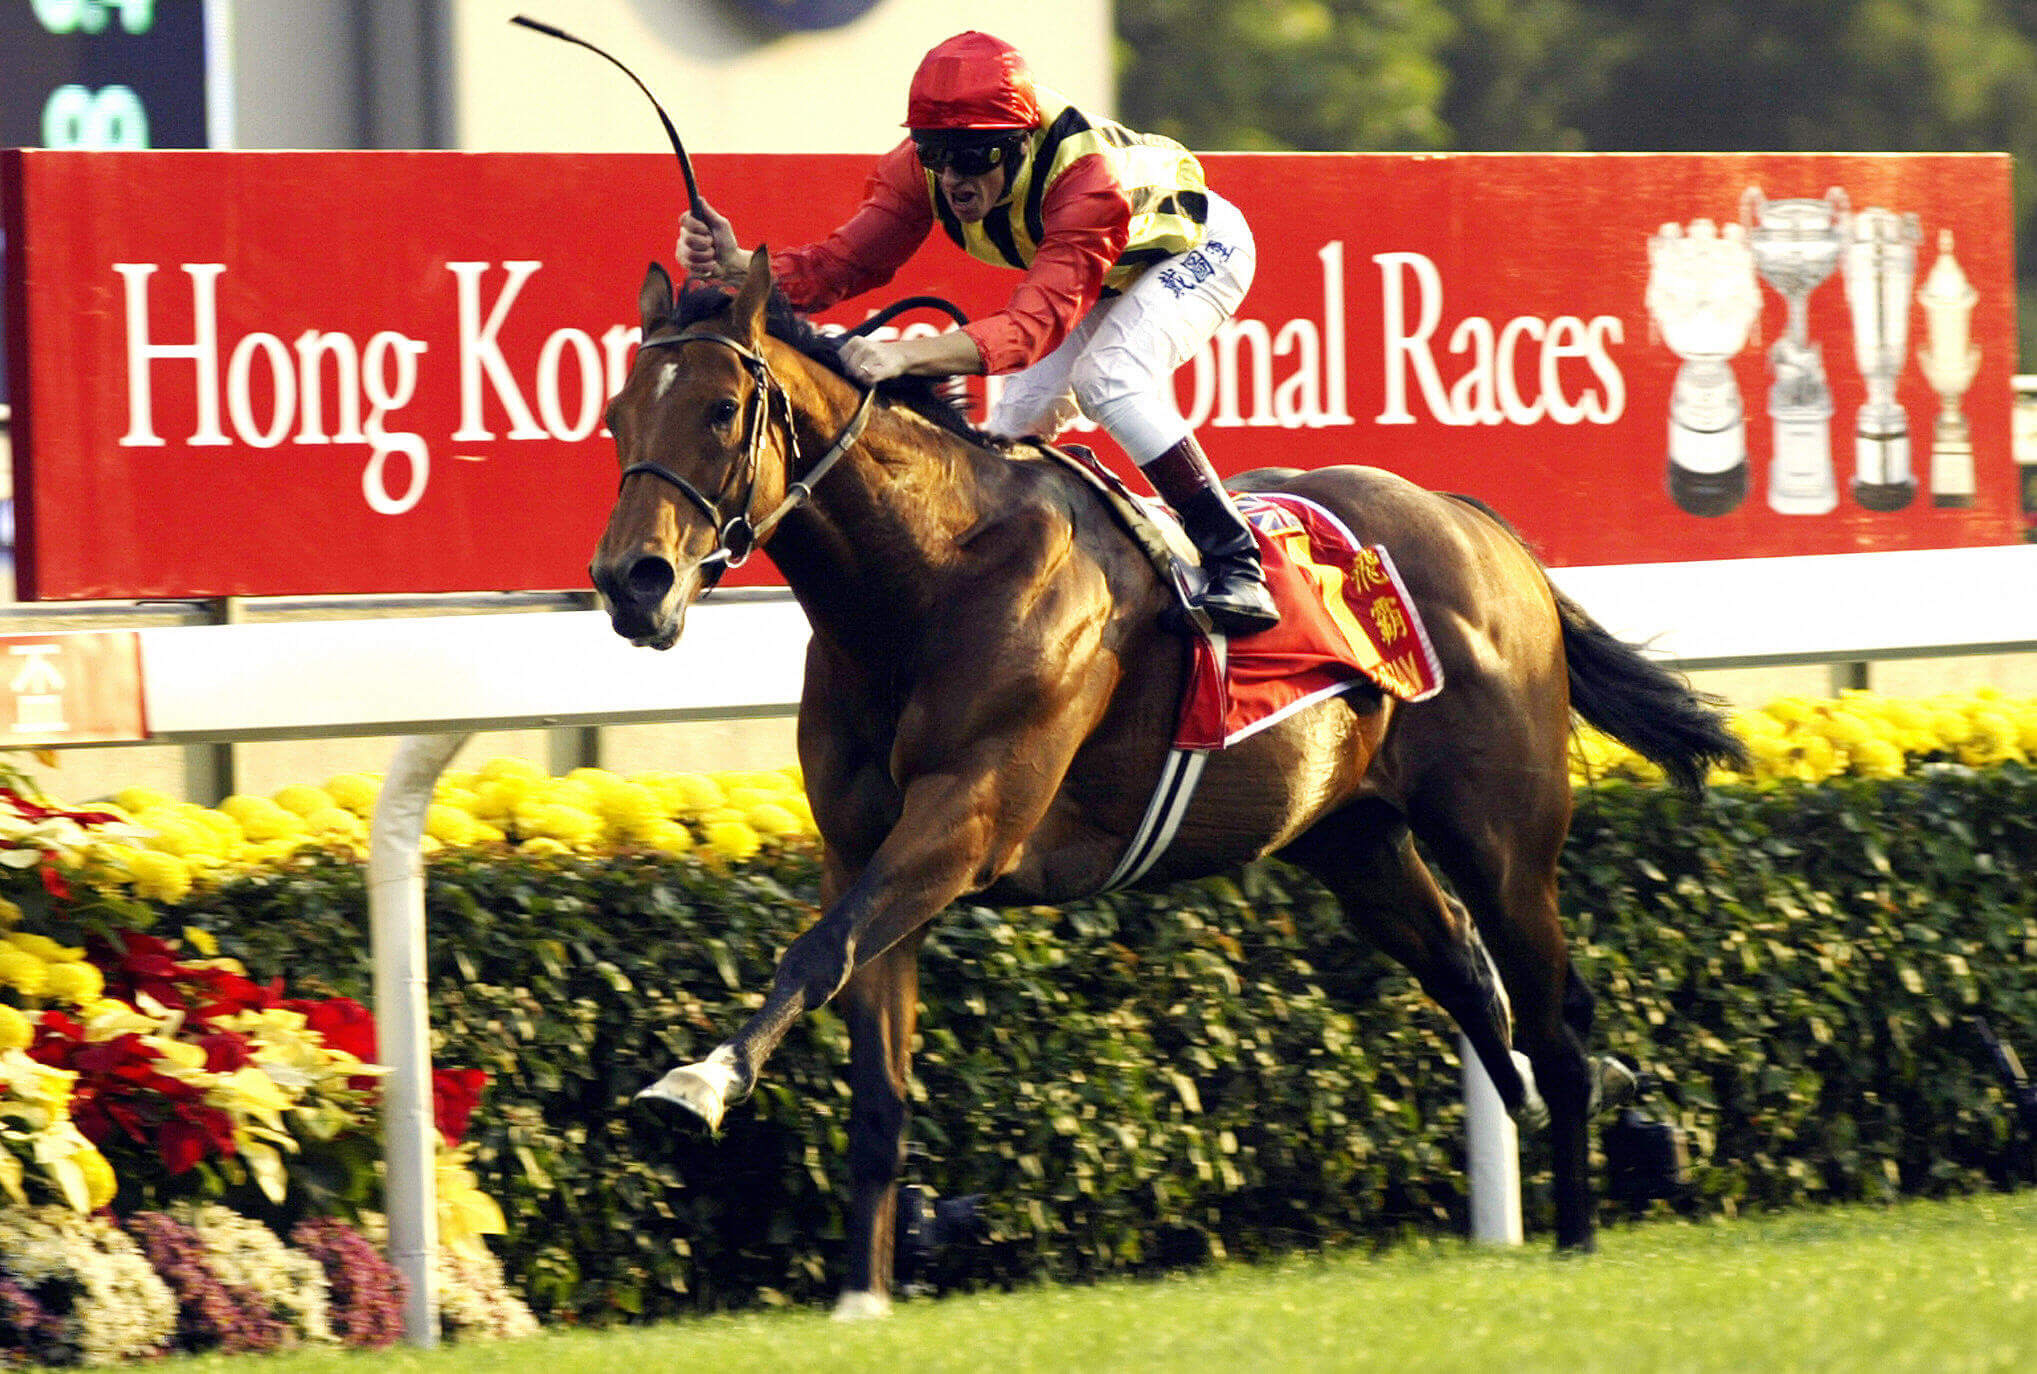 Frankie Dettori win the Hong Kong Cup on